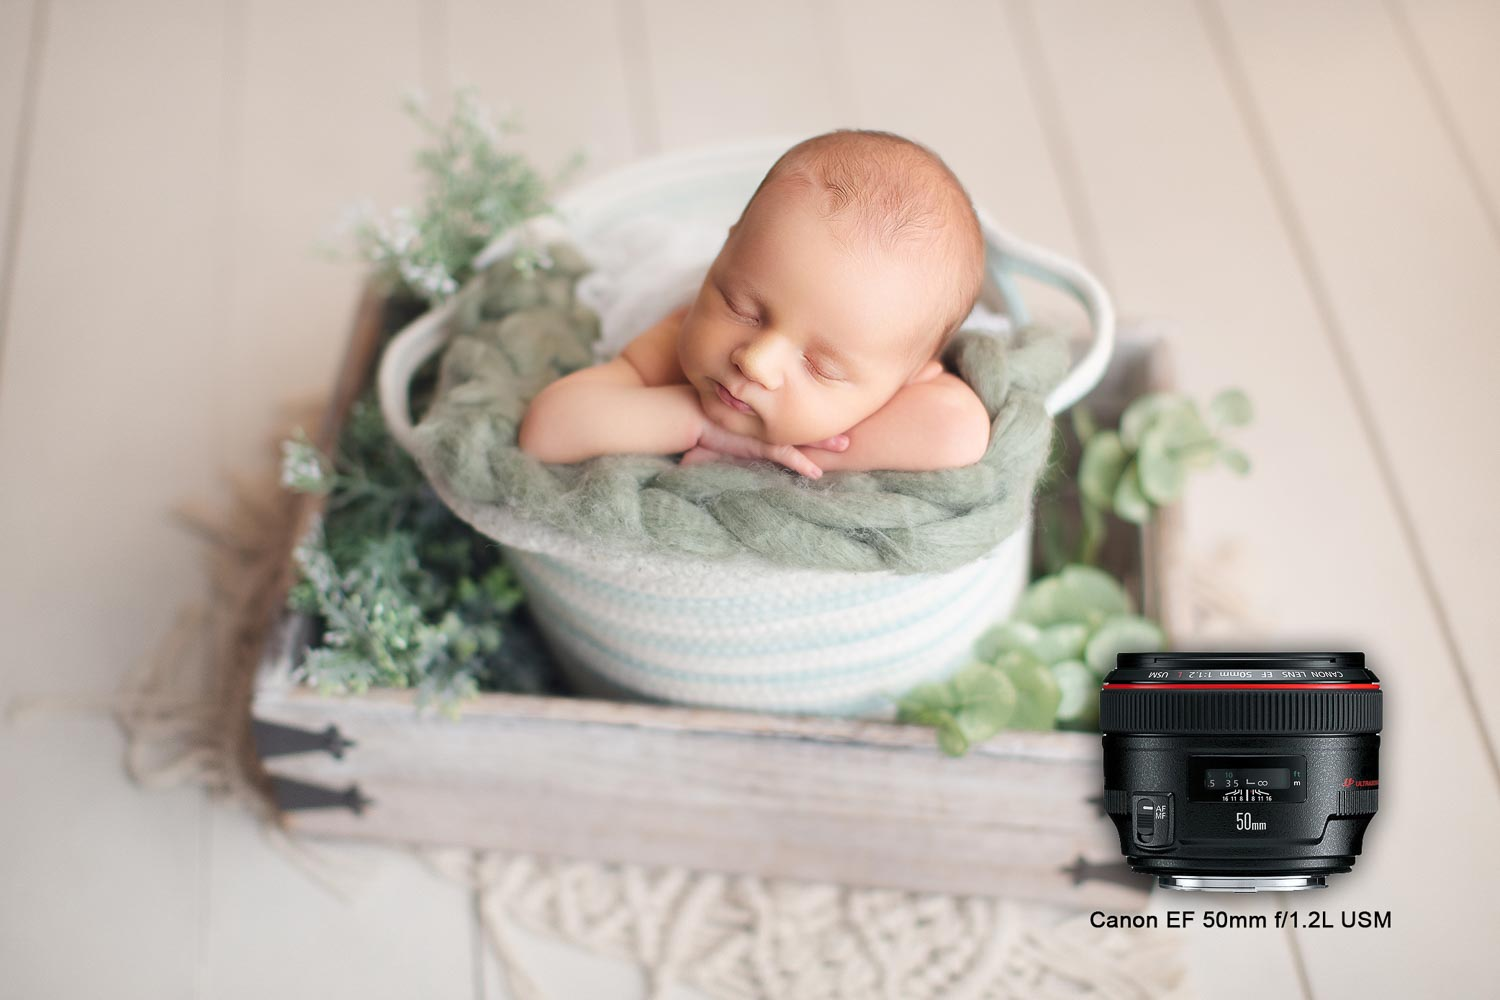 canon 50mm lens is the best for newborn photography - baby on a white bucket - Vancouver